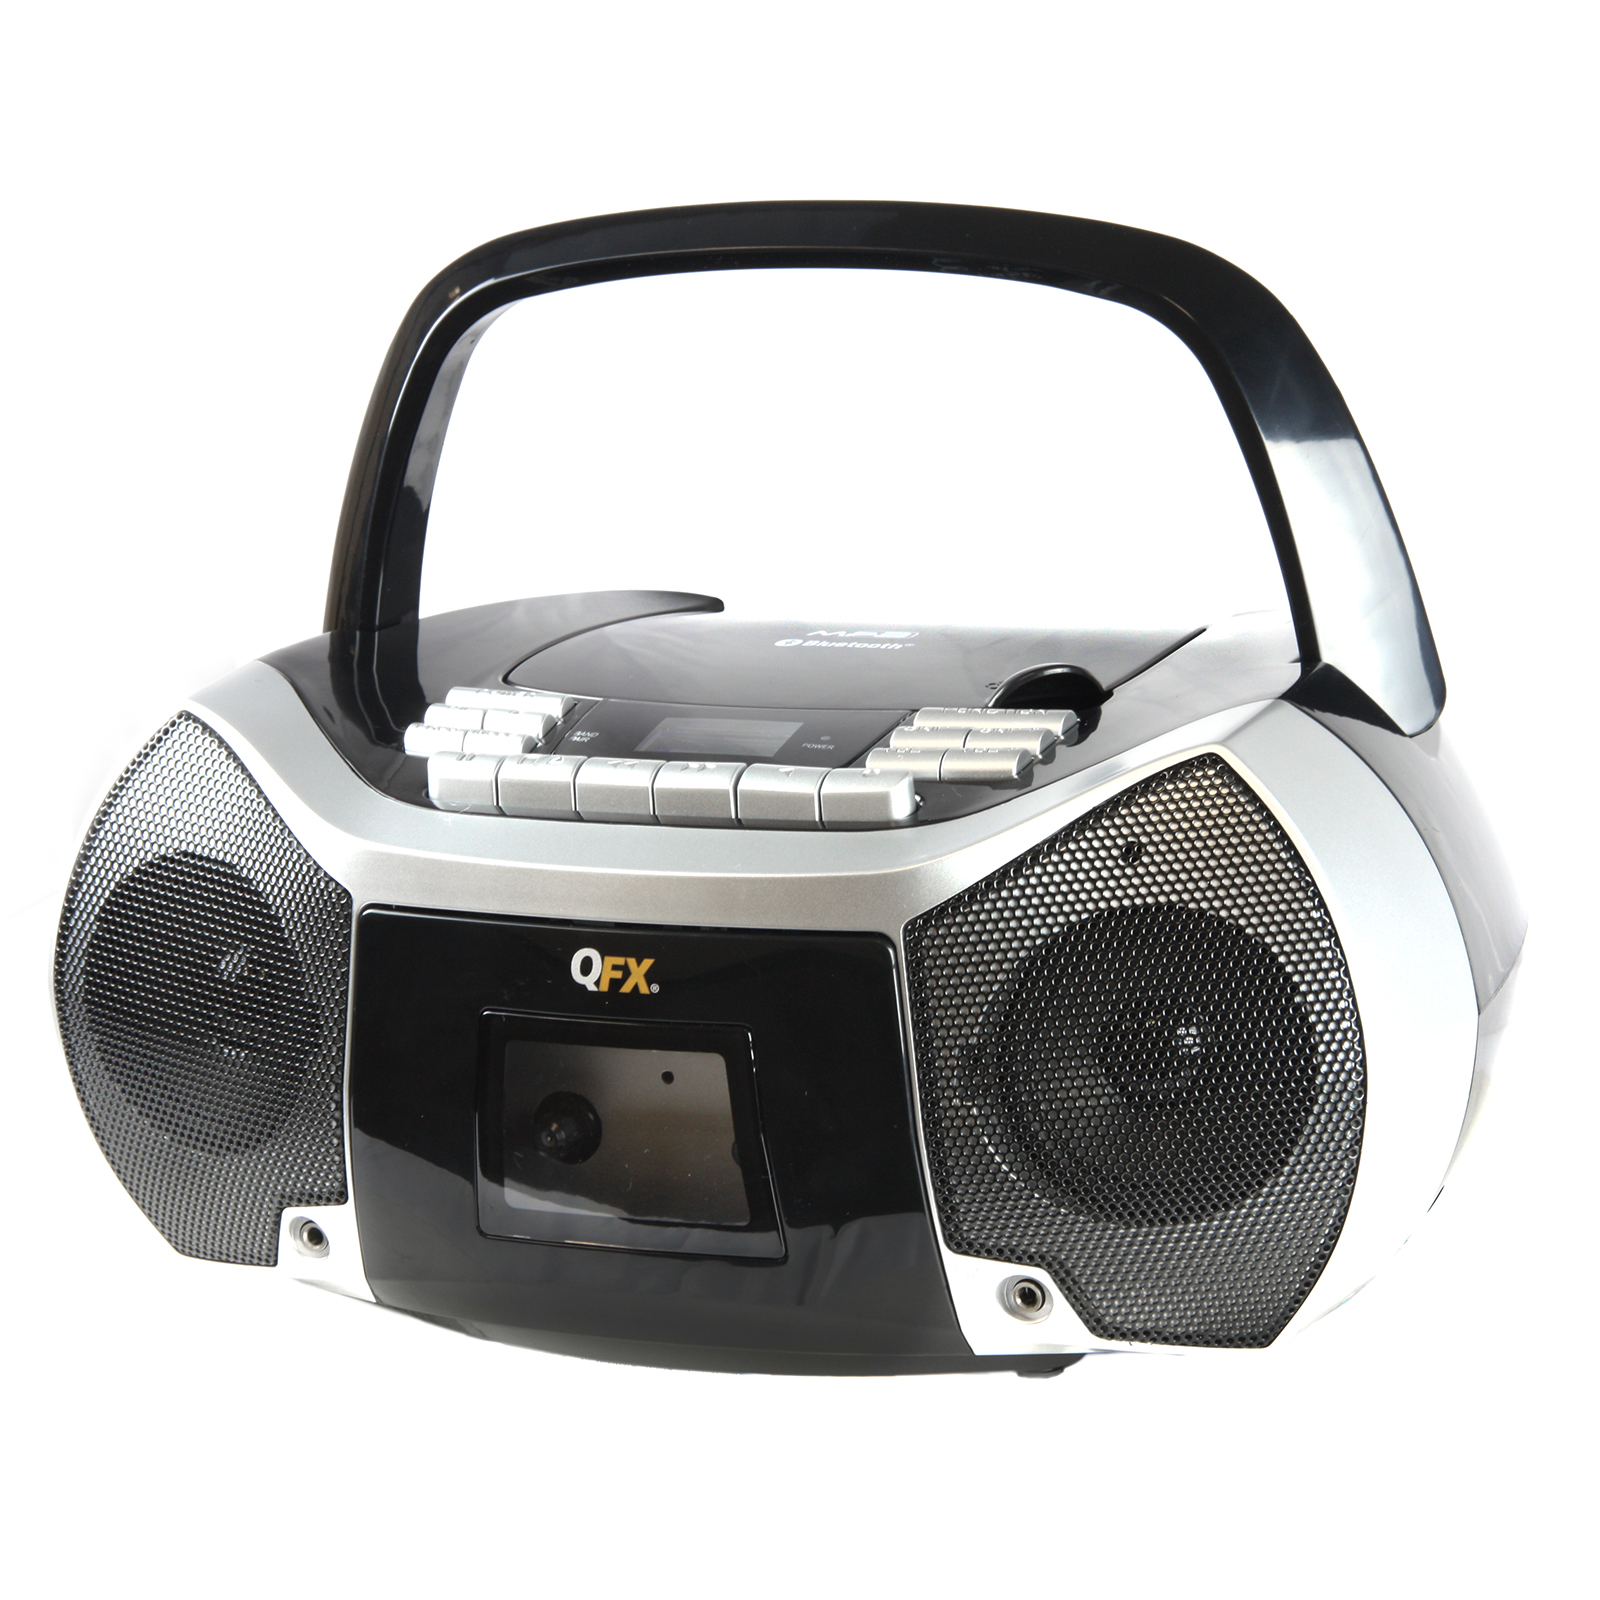 Radio-cd-player Für Badezimmer Quantum Fx 97096447m Portable Boombox With Bluetooth Am